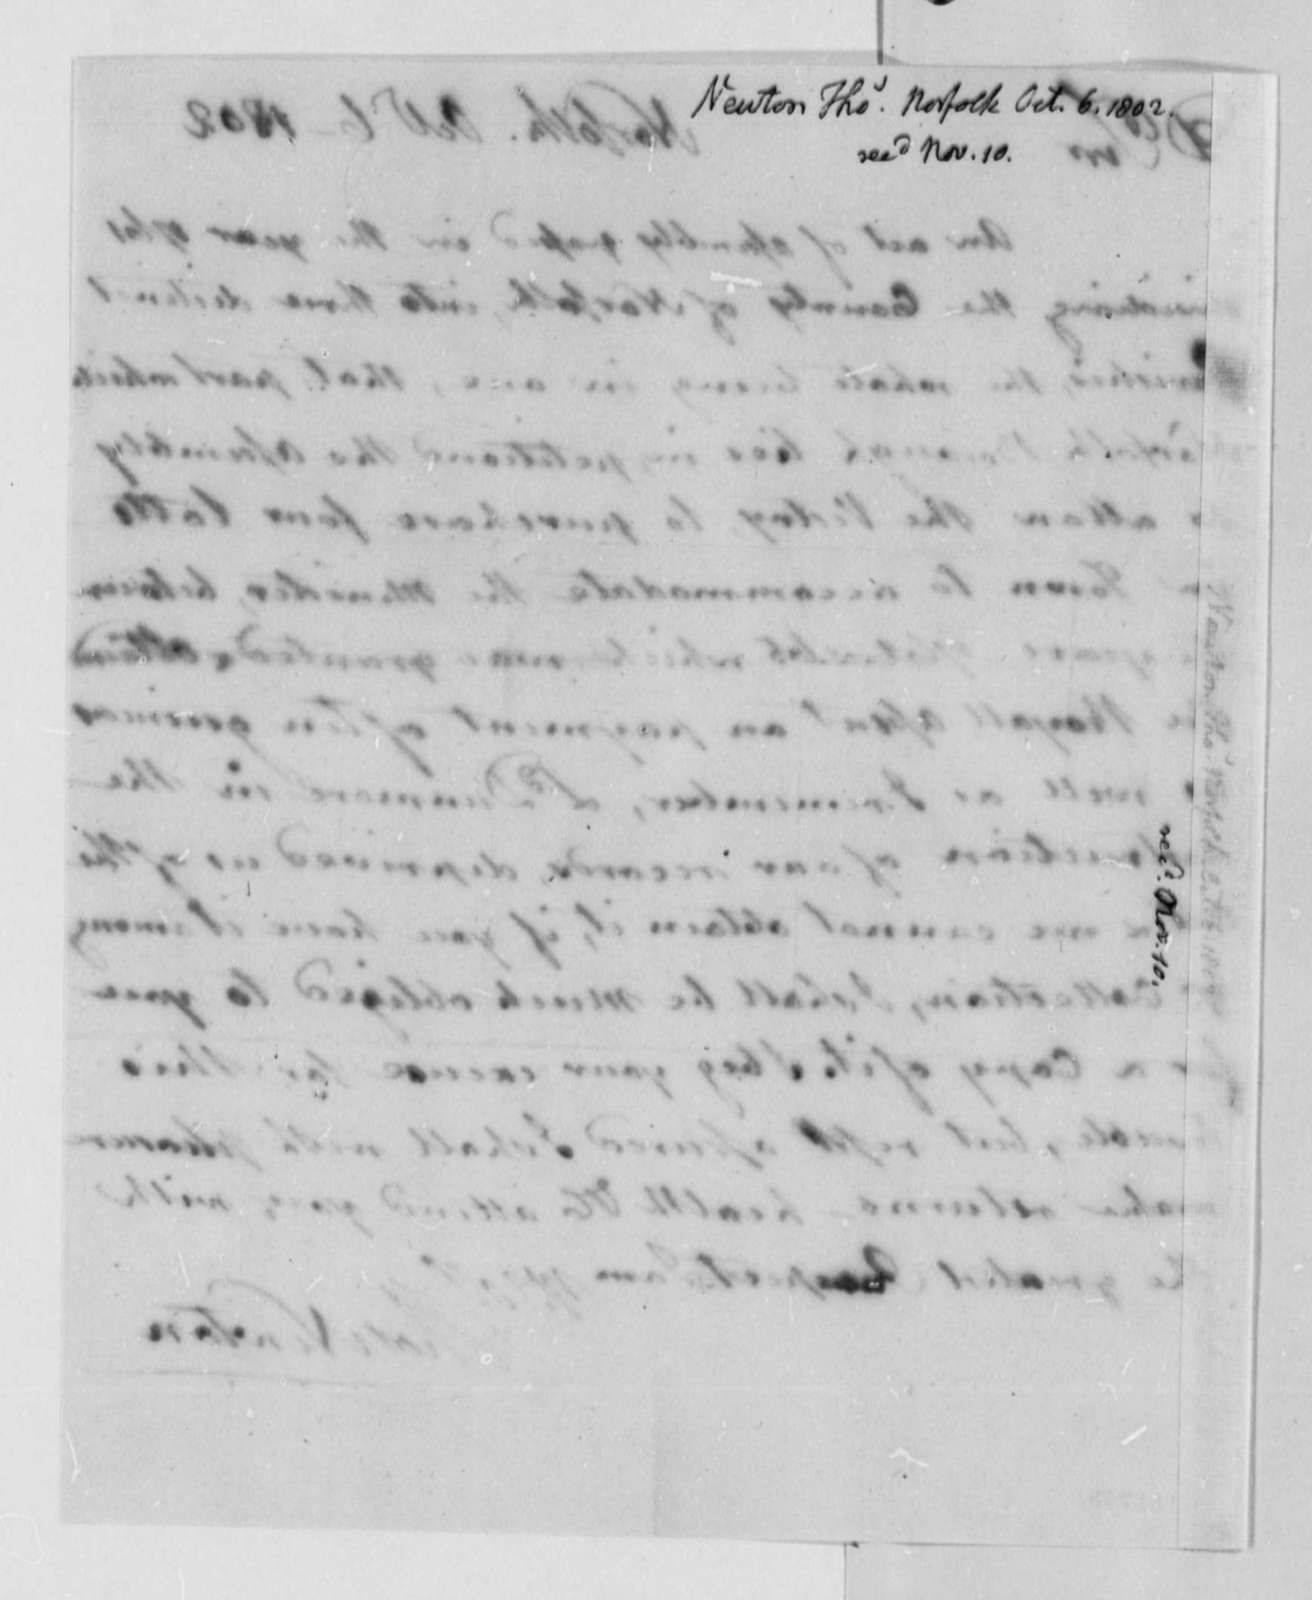 Thomas Newton to Thomas Jefferson, October 6, 1802